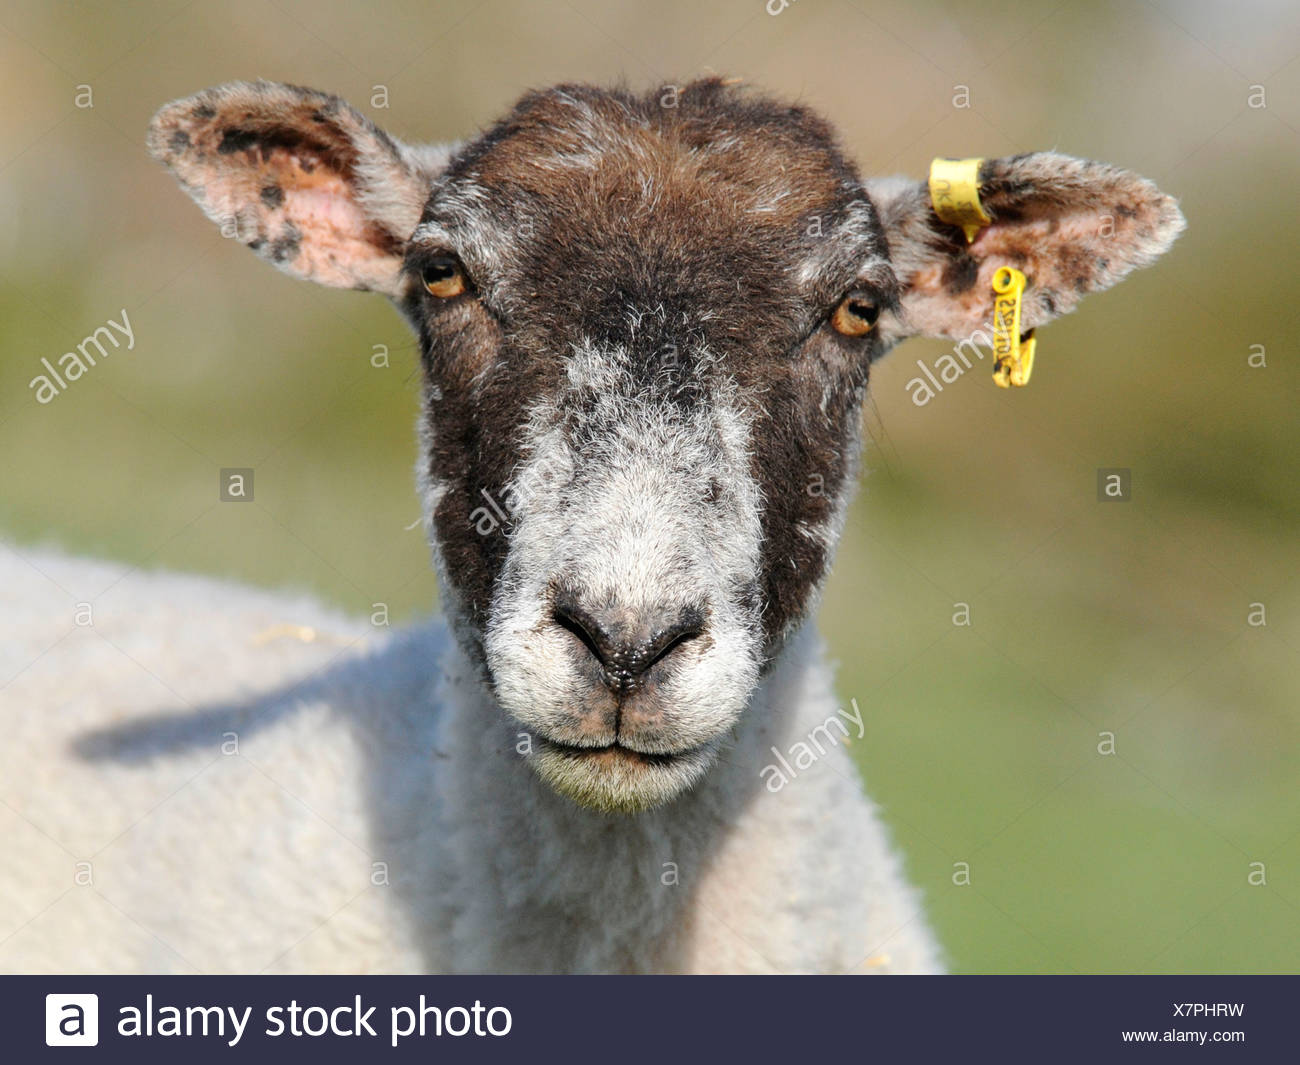 A portrait of a sheep looking serious, tagged and wearing an ear clip. Stock Photo